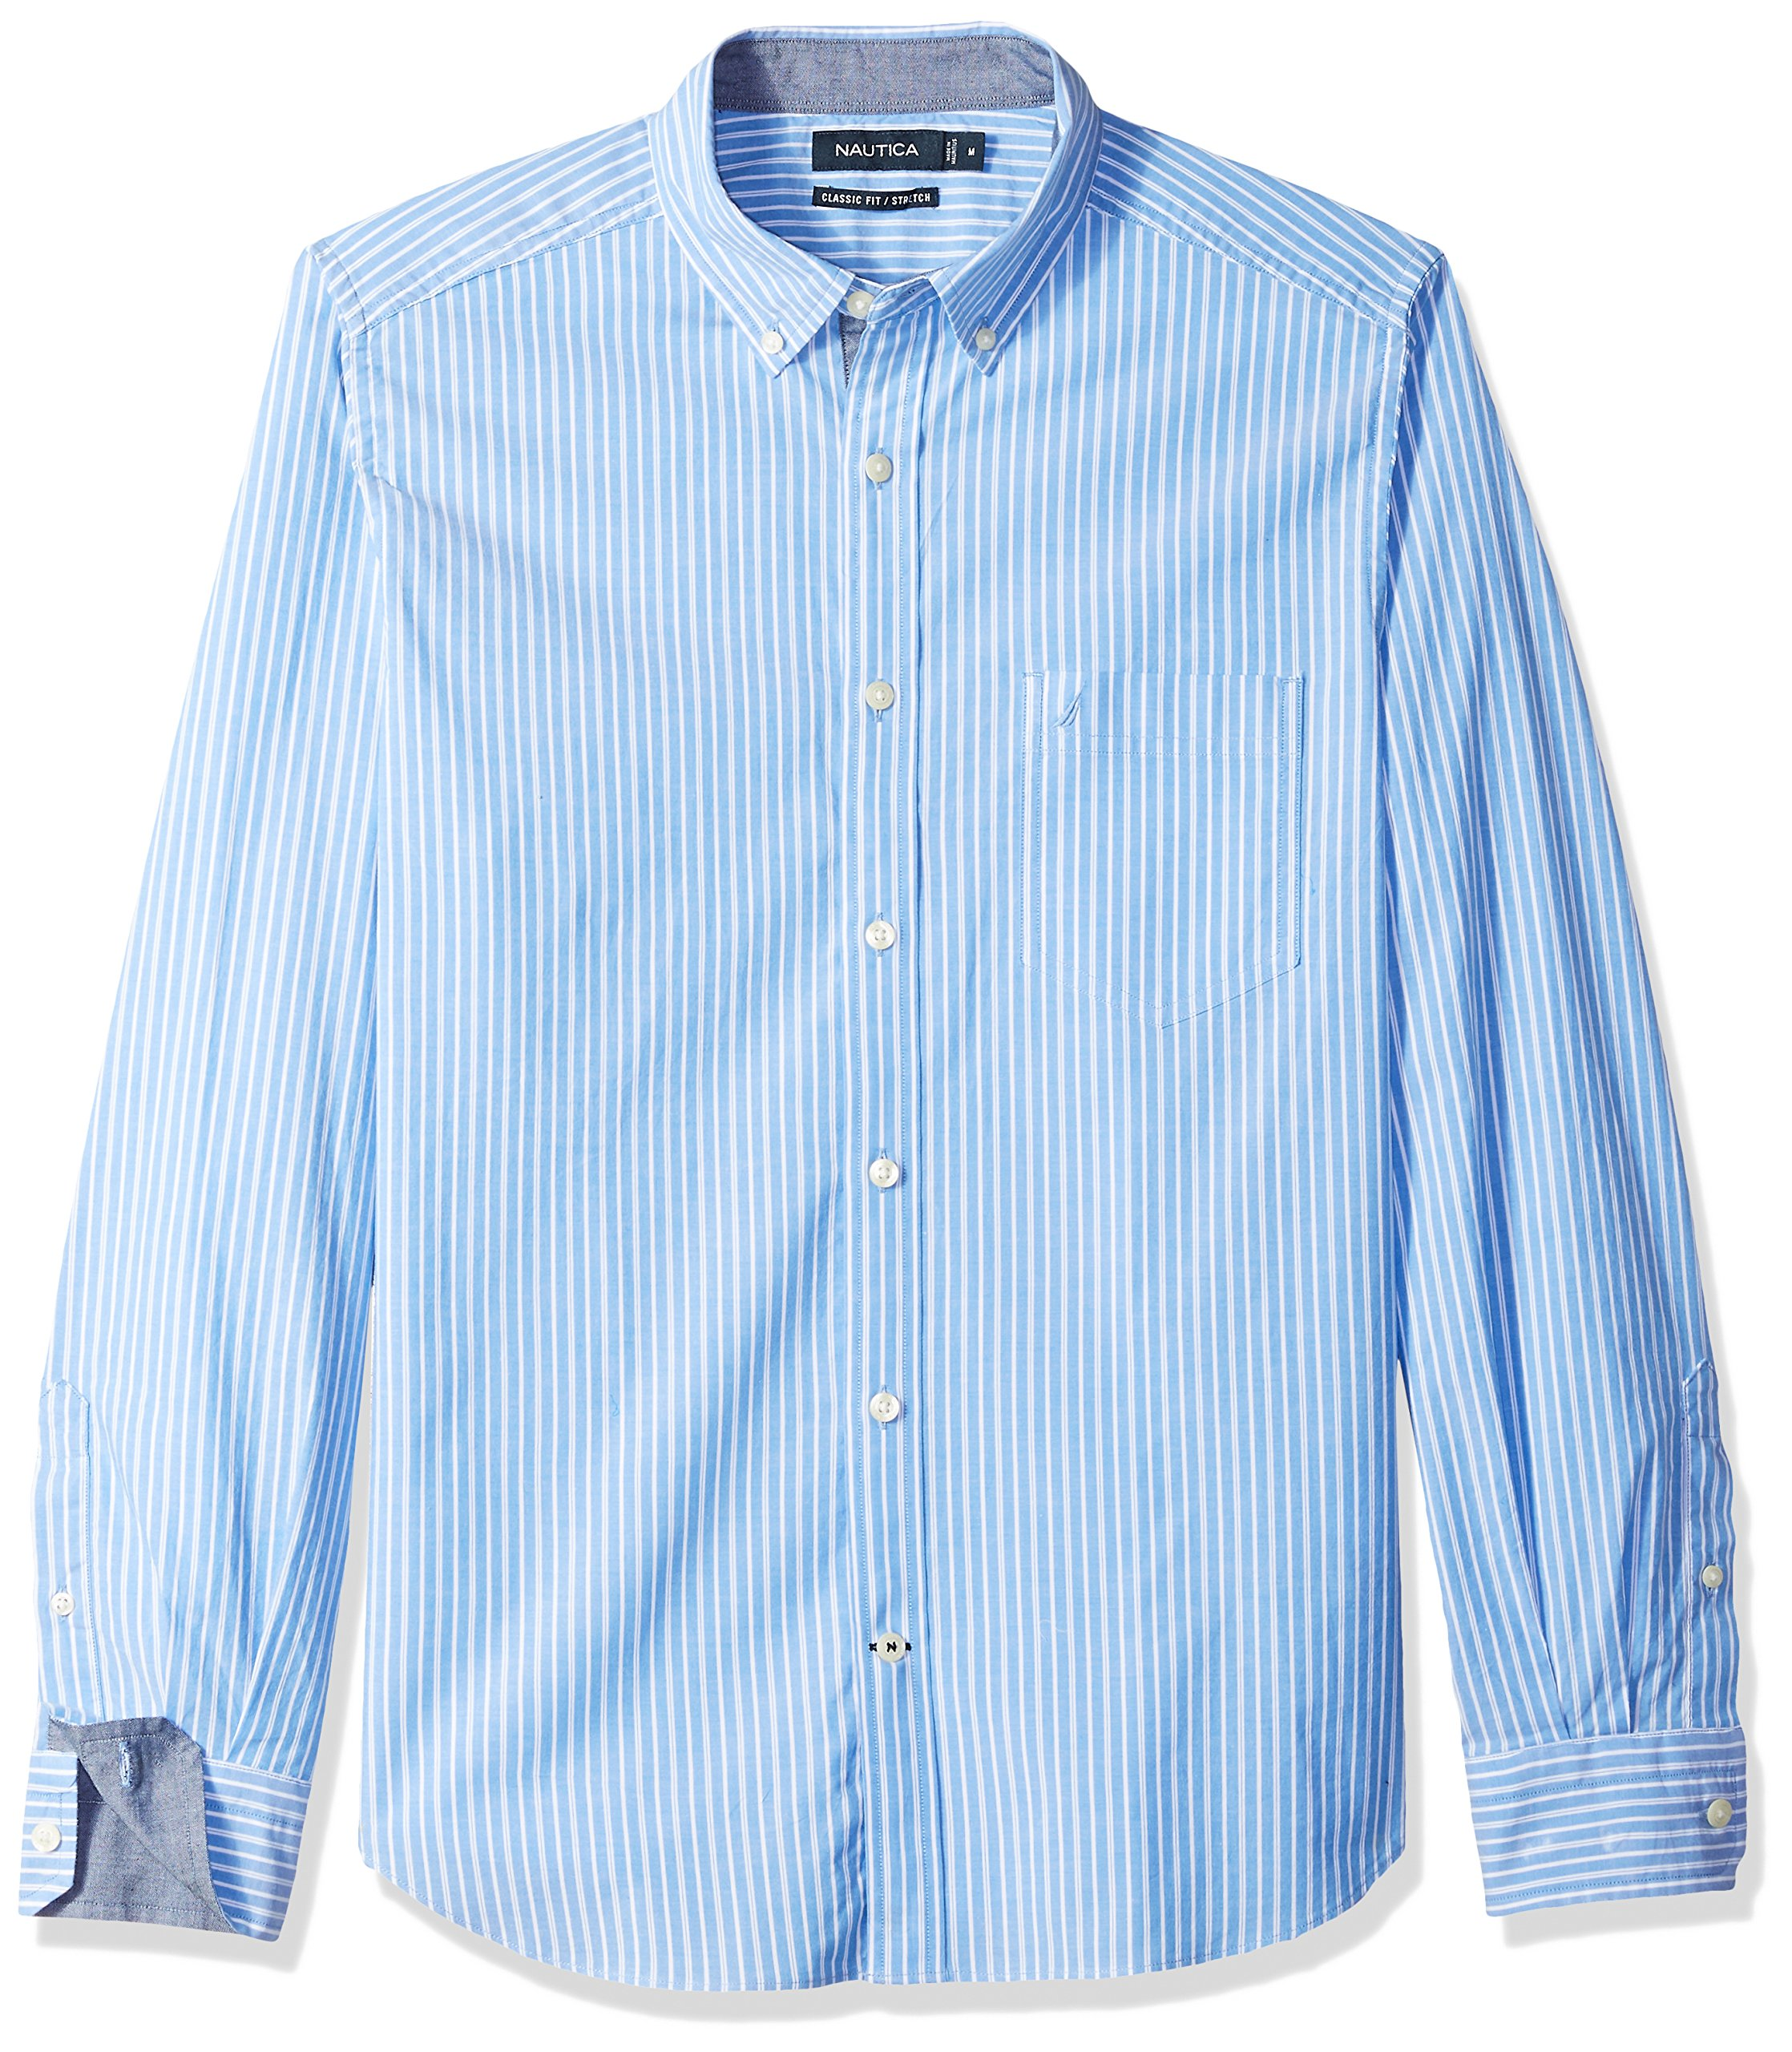 Nautica Men's Classic Fit Stretch Striped Long Sleeve Button Down Shirt, Light French Blue, Medium